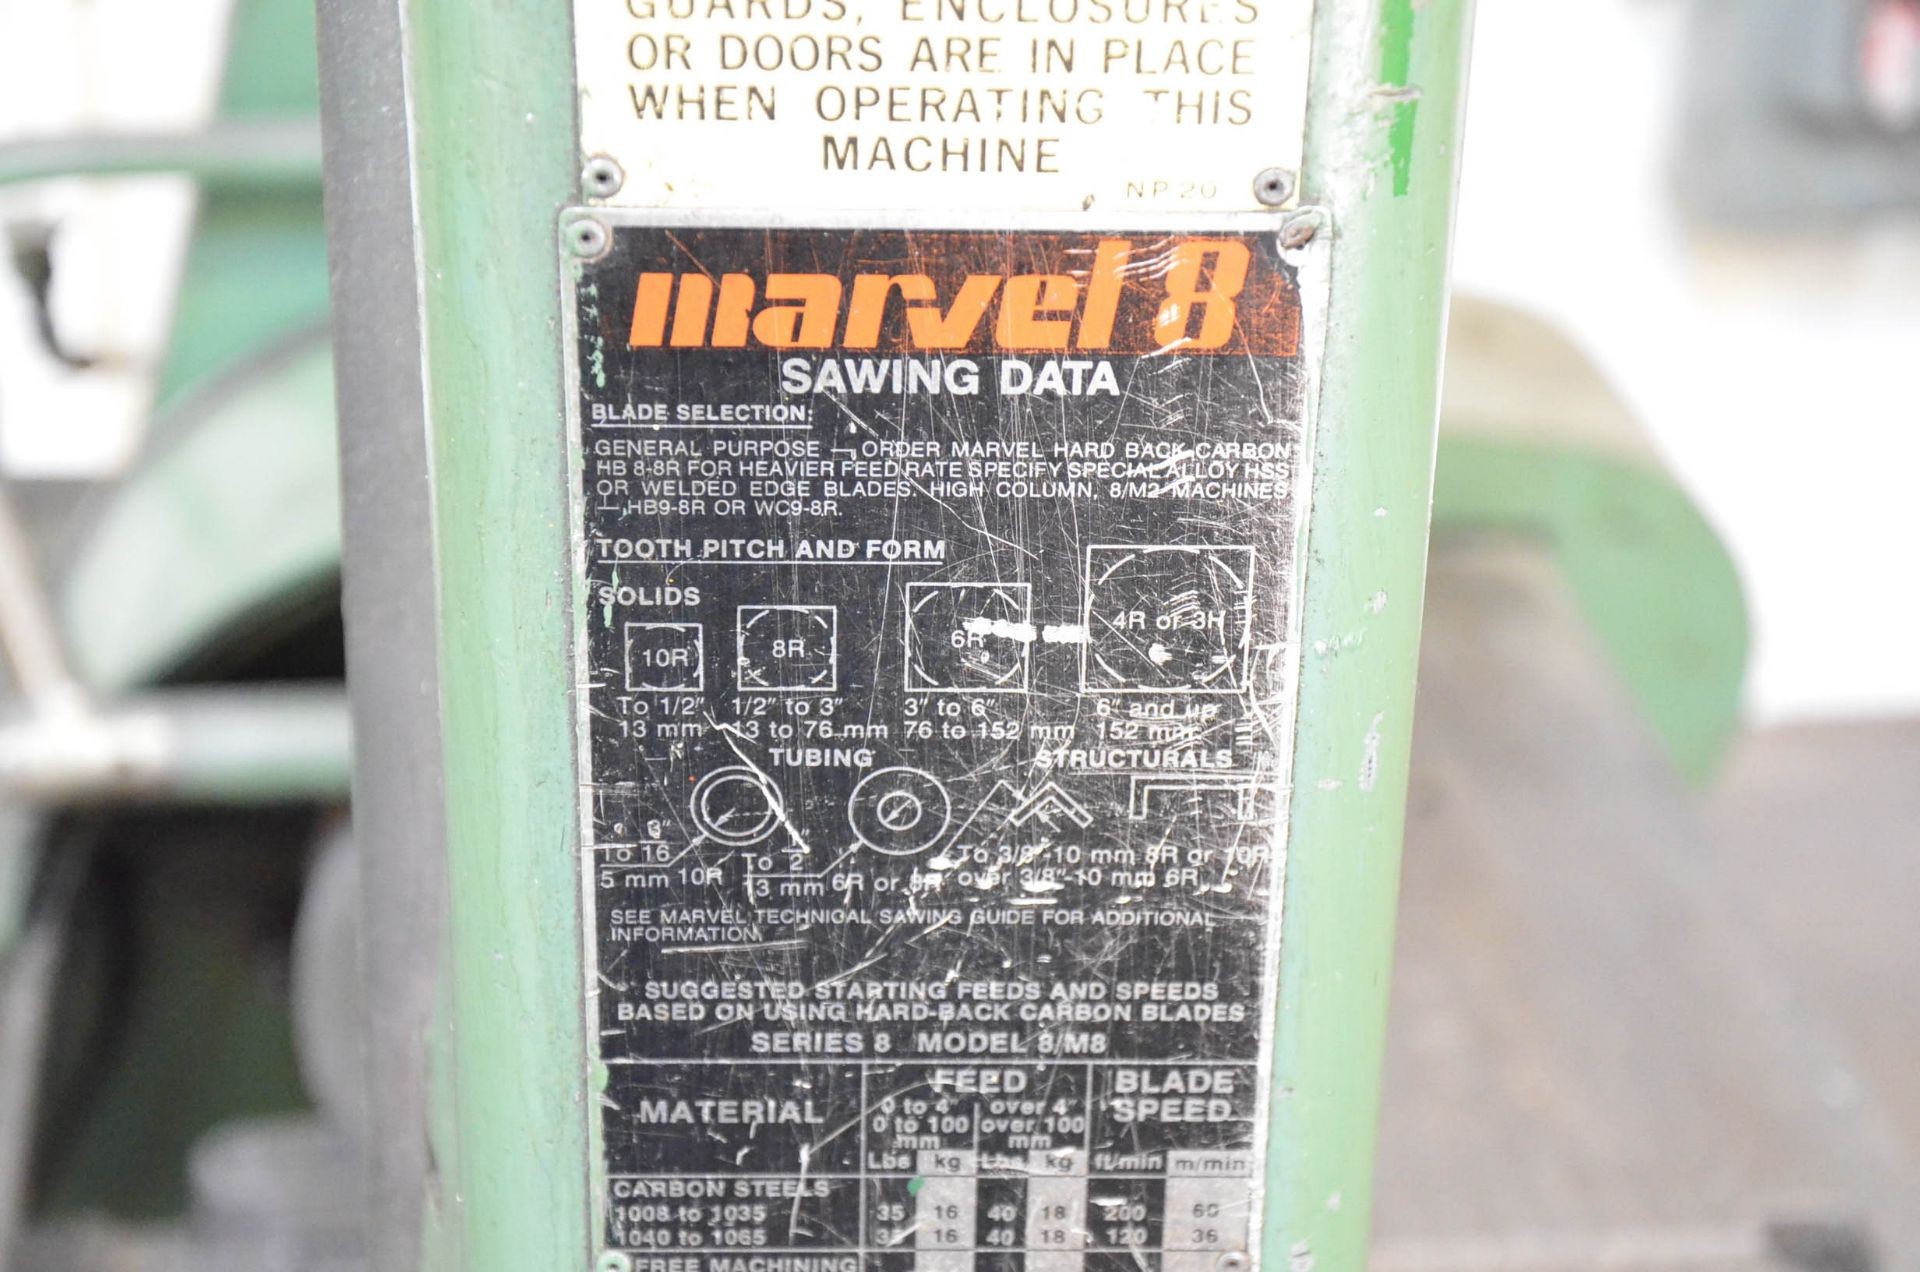 """MARVEL SERIES 8 TILTING HEAD SLIDING FRAME VERTICAL BAND SAW WITH 17"""" THROAT, 12"""" MAX WORKPIECE - Image 4 of 4"""